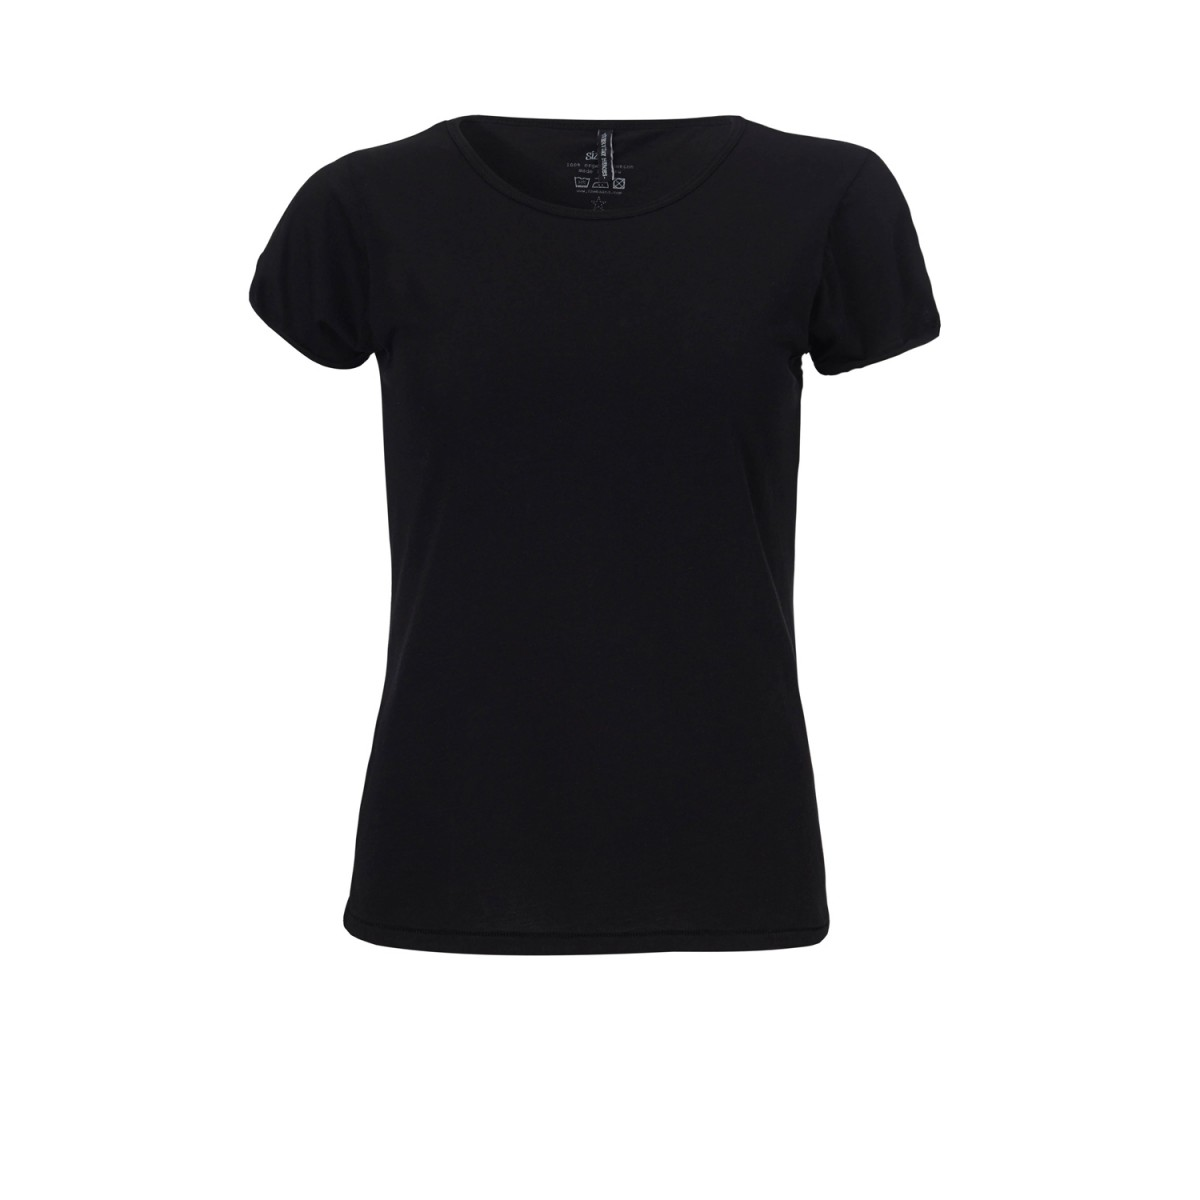 The Baand 1005 Ellie T-Shirt Black-30